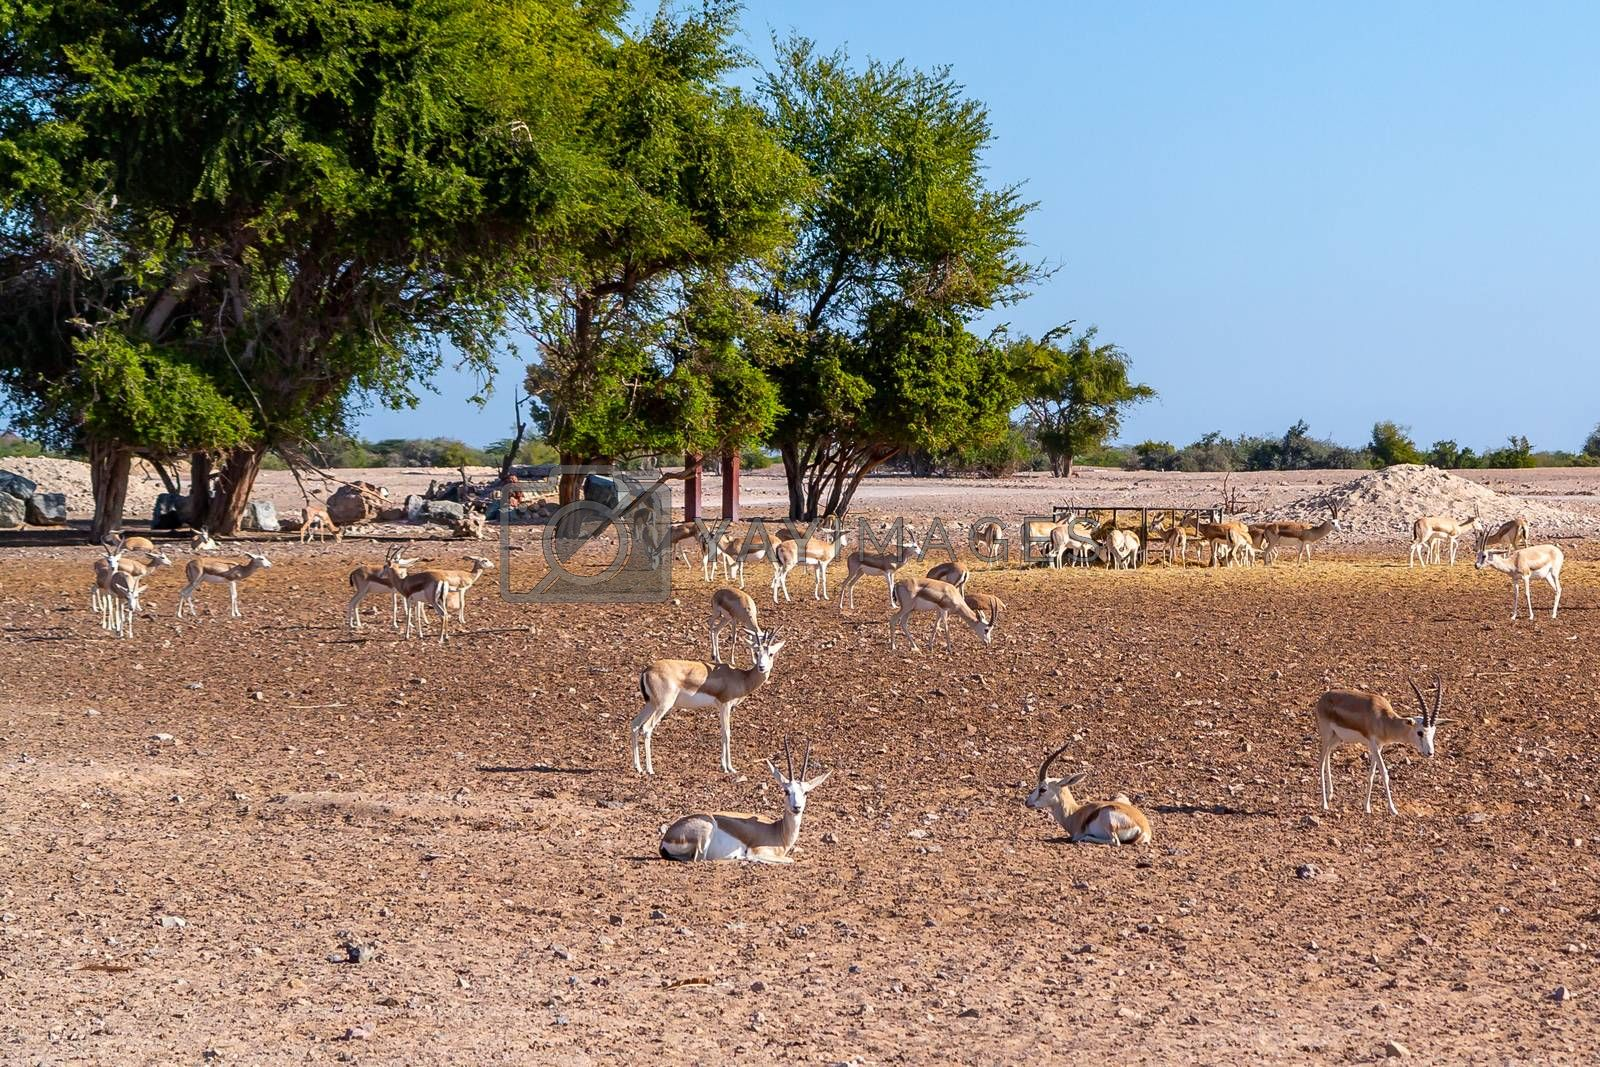 Antelope group in a safari park on the island of Sir Bani Yas, United Arab Emirates by galsand